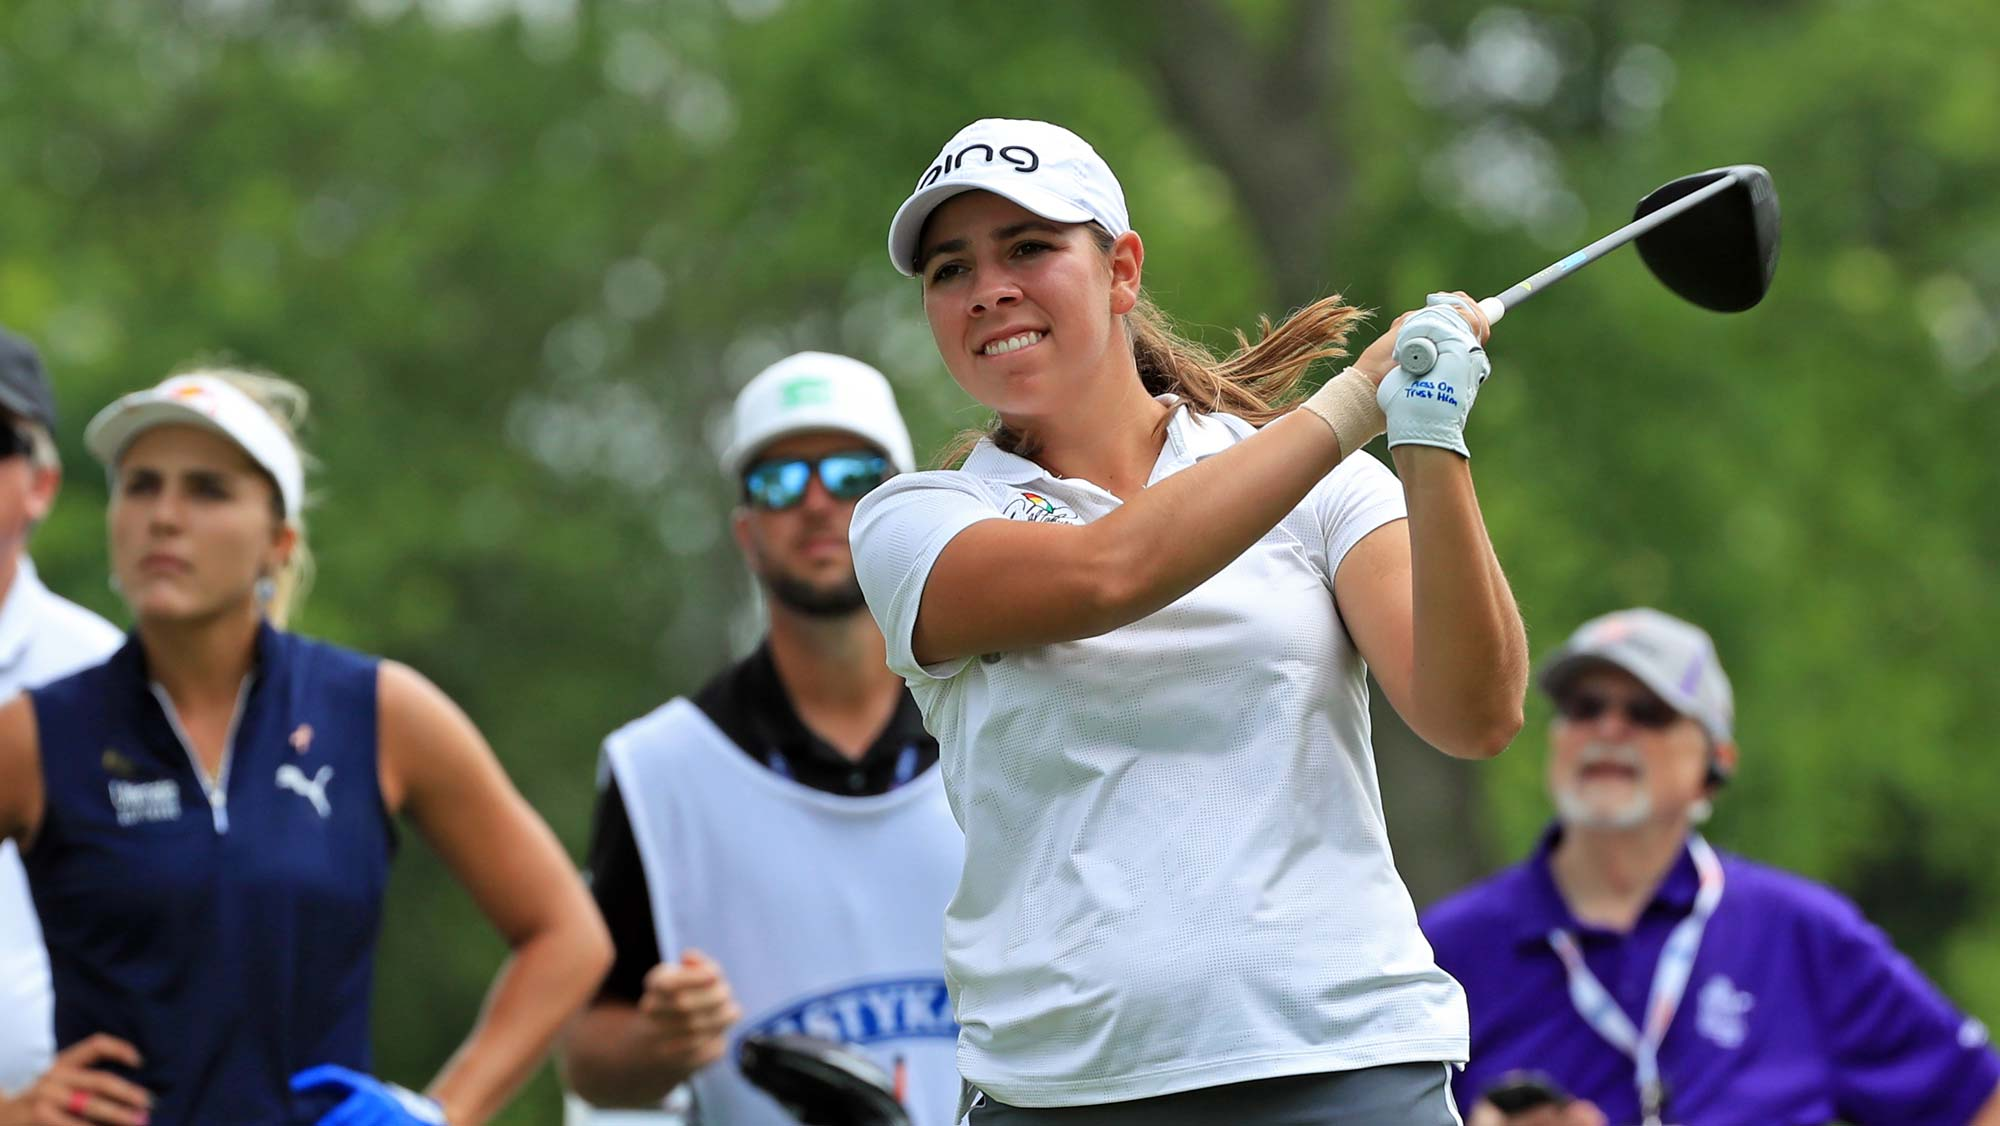 Kristen Gillman hits her tee shot on the ninth hole during the first round of the ShopRite LPGA Classic presented by Acer